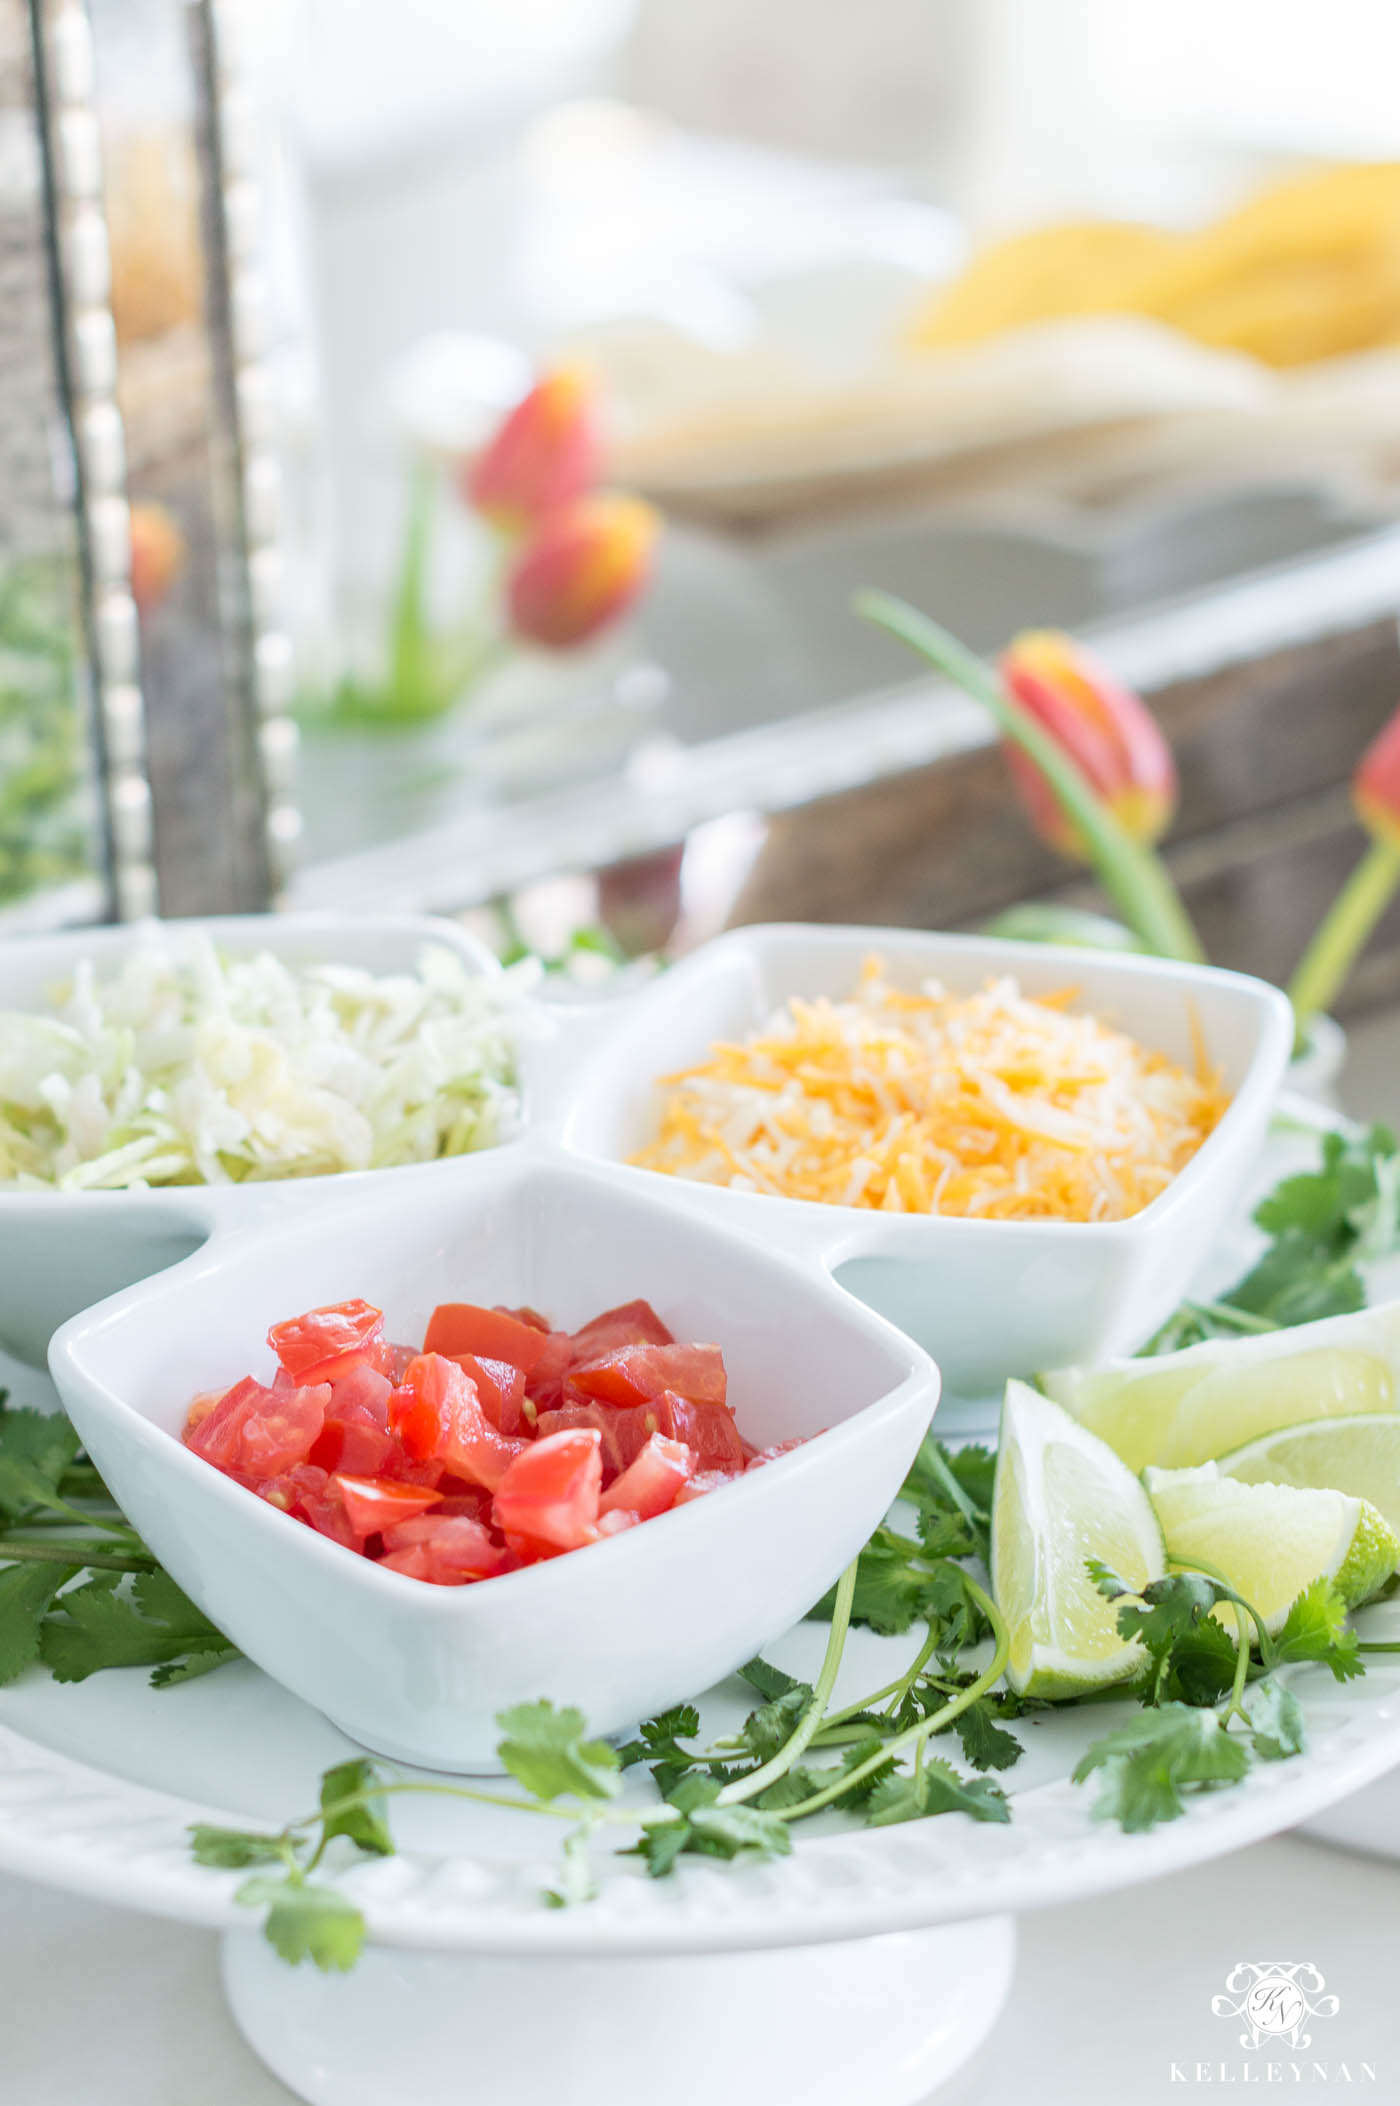 Taco Bar Toppings and Menu Ideas